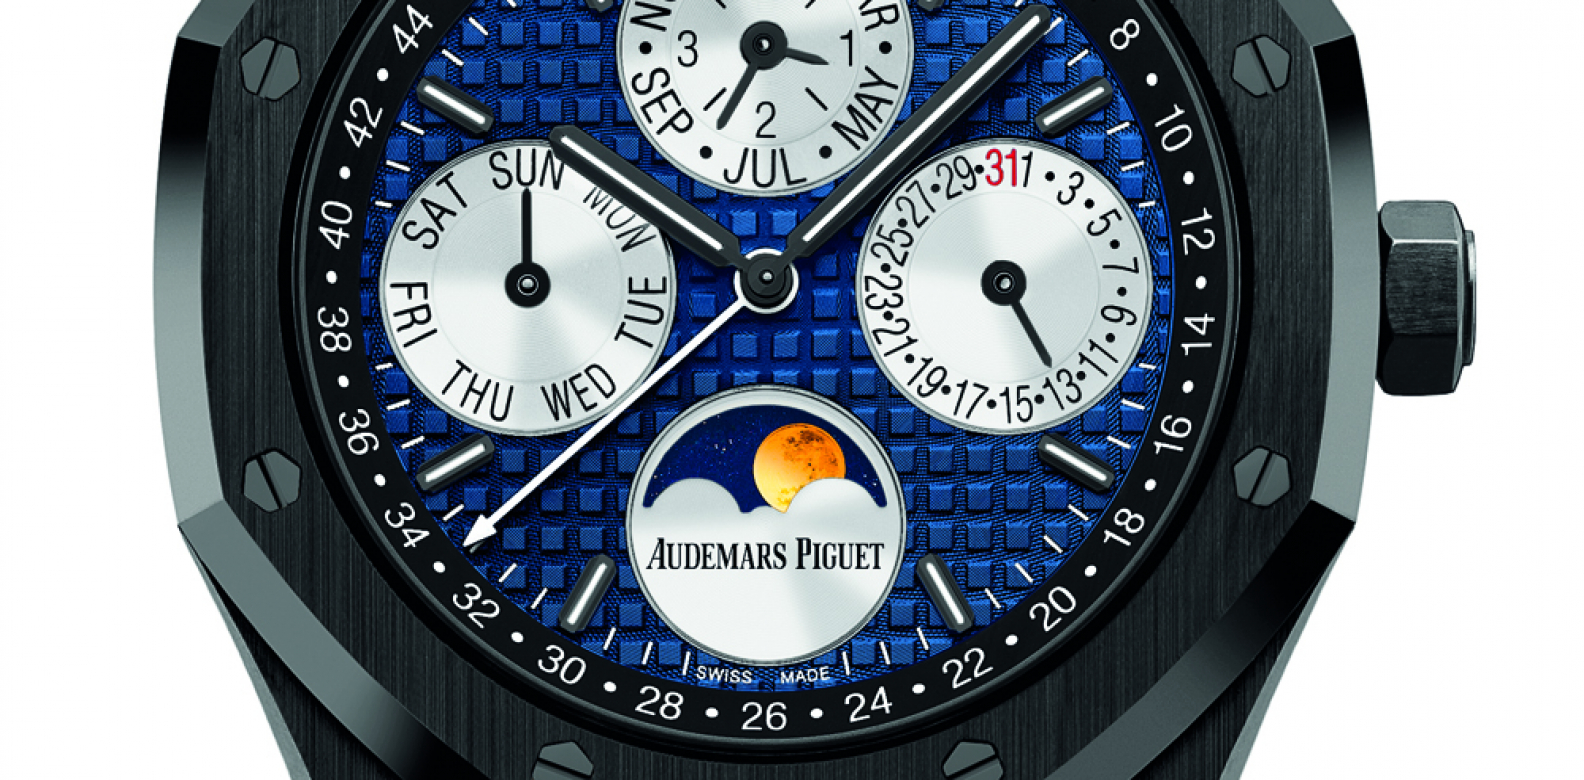 Based on the Royal Oak launched by Audemars Piguet at this year's SIHH, the Only Watch version has a beautiful blue Mega Tapisserie dial to complement the highly finished ceramic case and bracelet. It also features a ceramic case back not found on the original model. (Photo: Courtesy of Audemars Piguet)